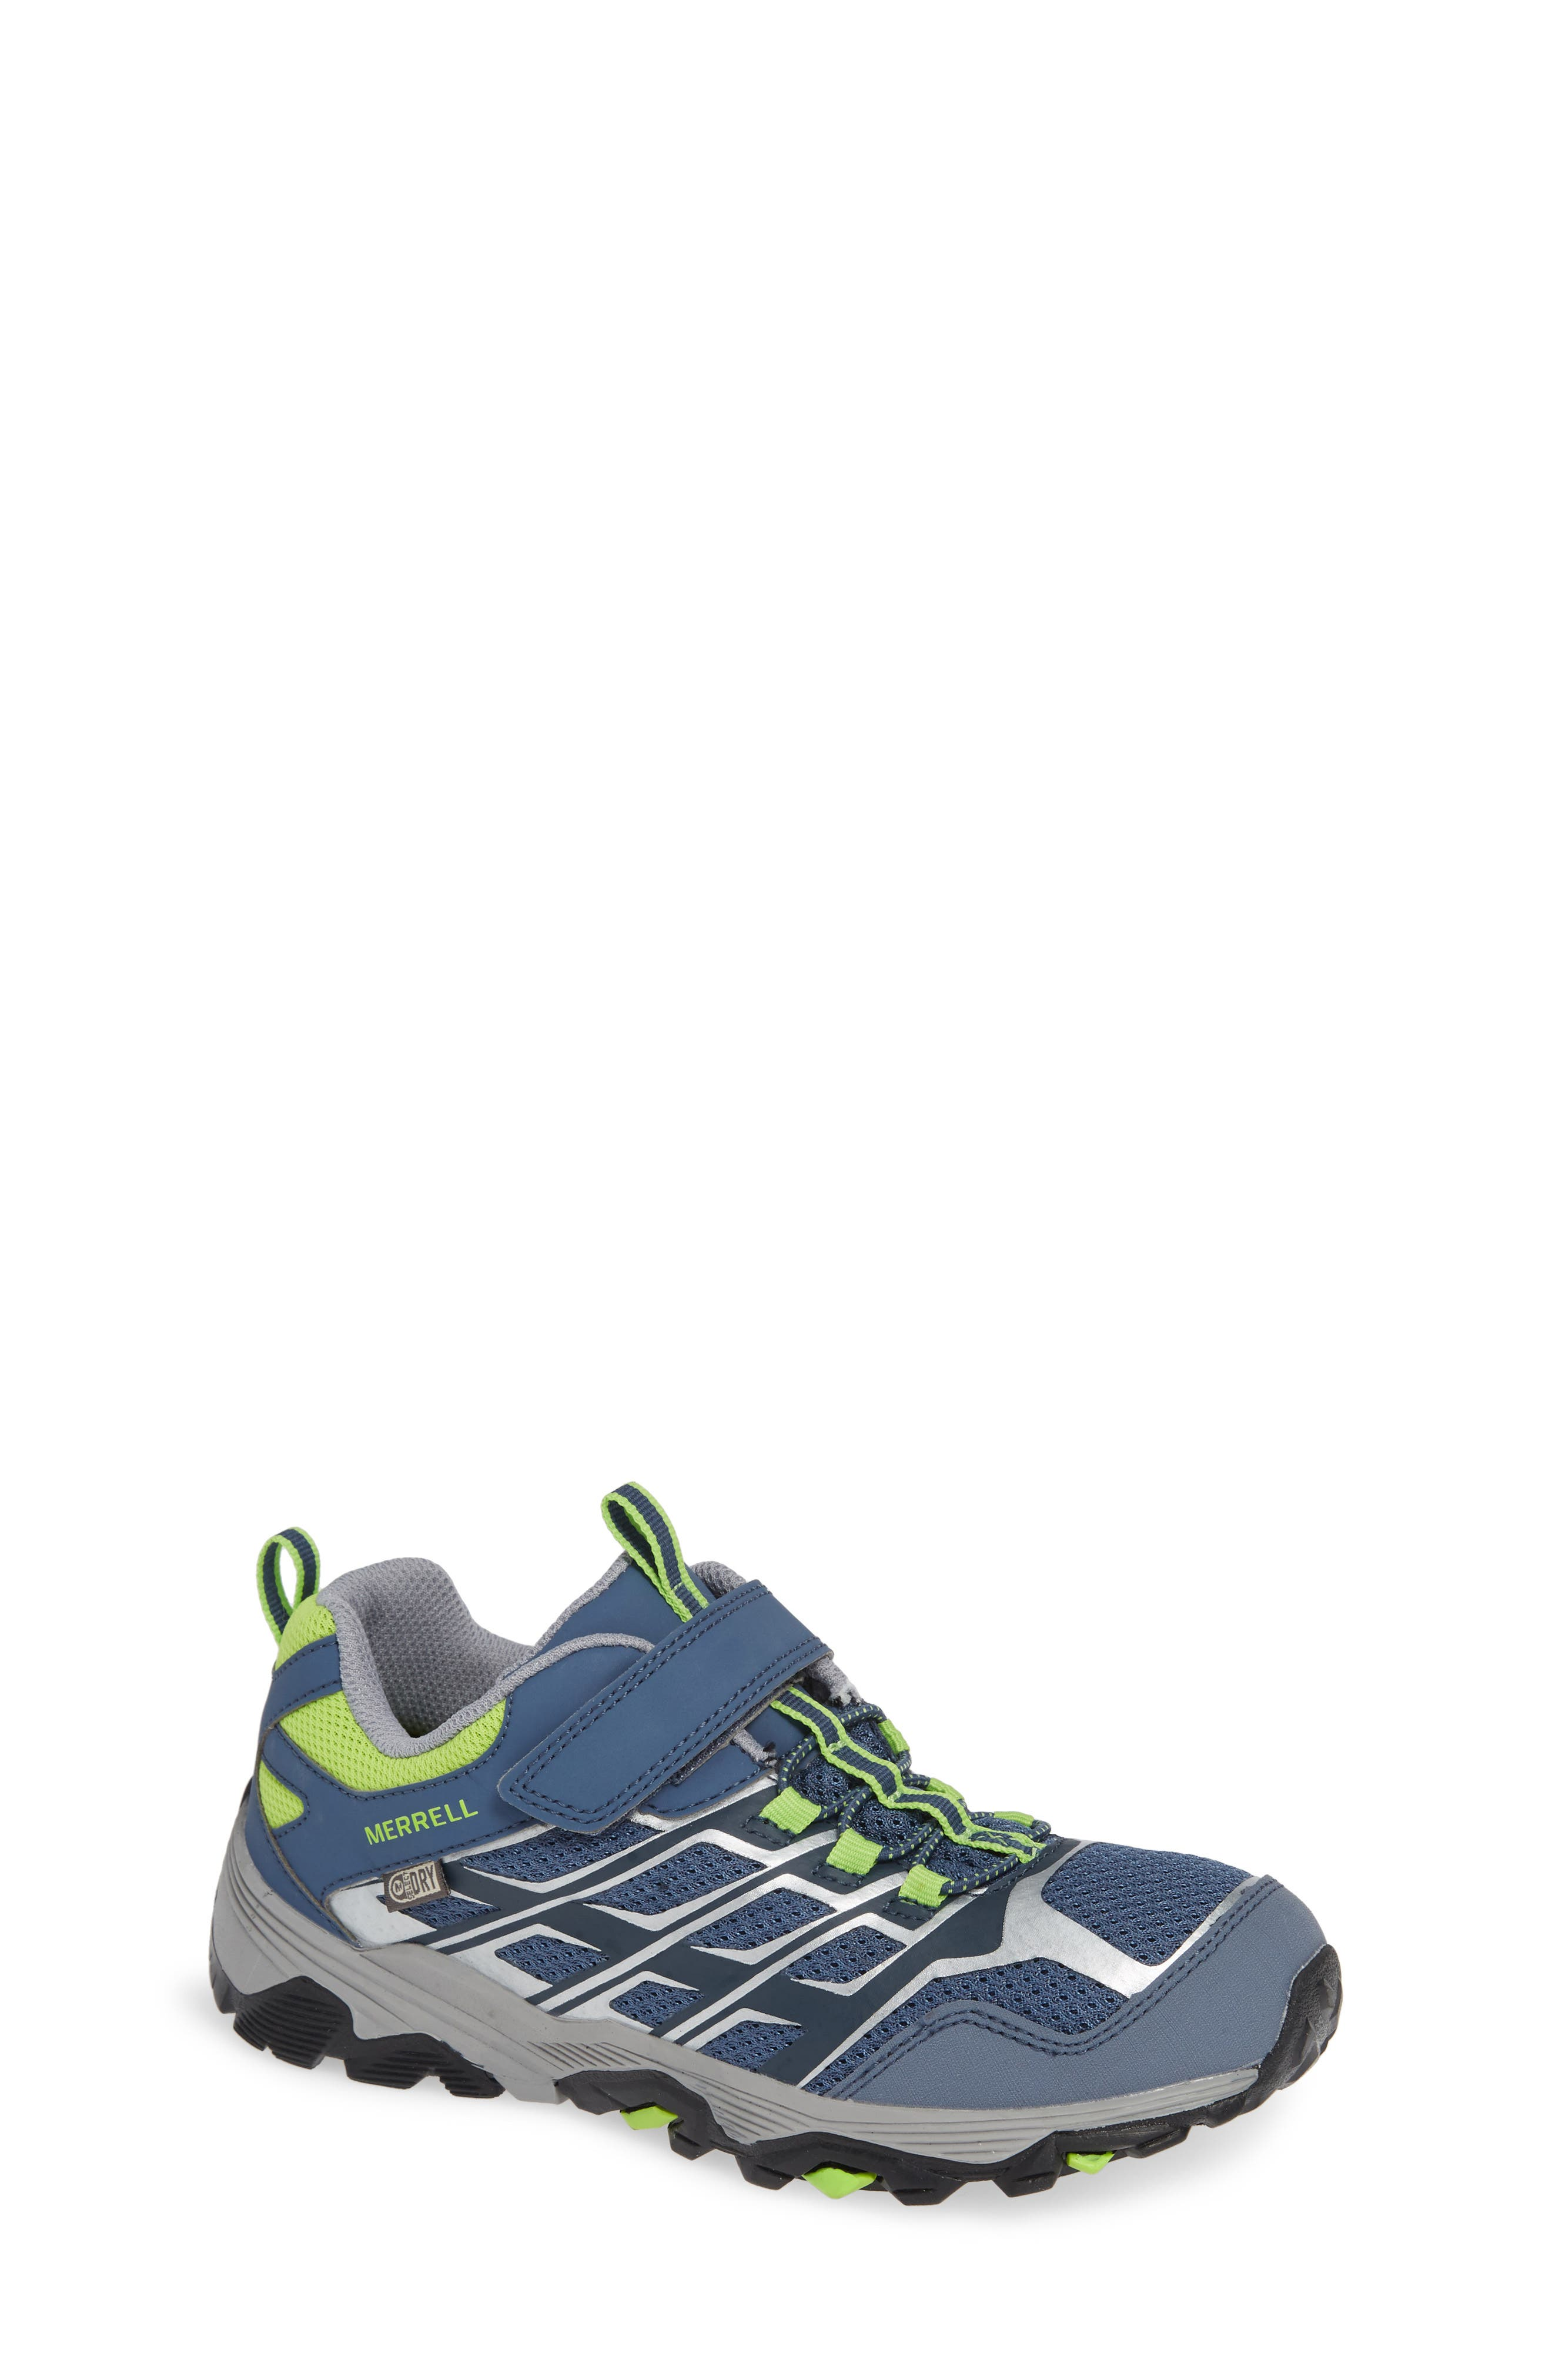 Moab FST Polar Low Waterproof Sneaker,                         Main,                         color, GREY/ GREEN